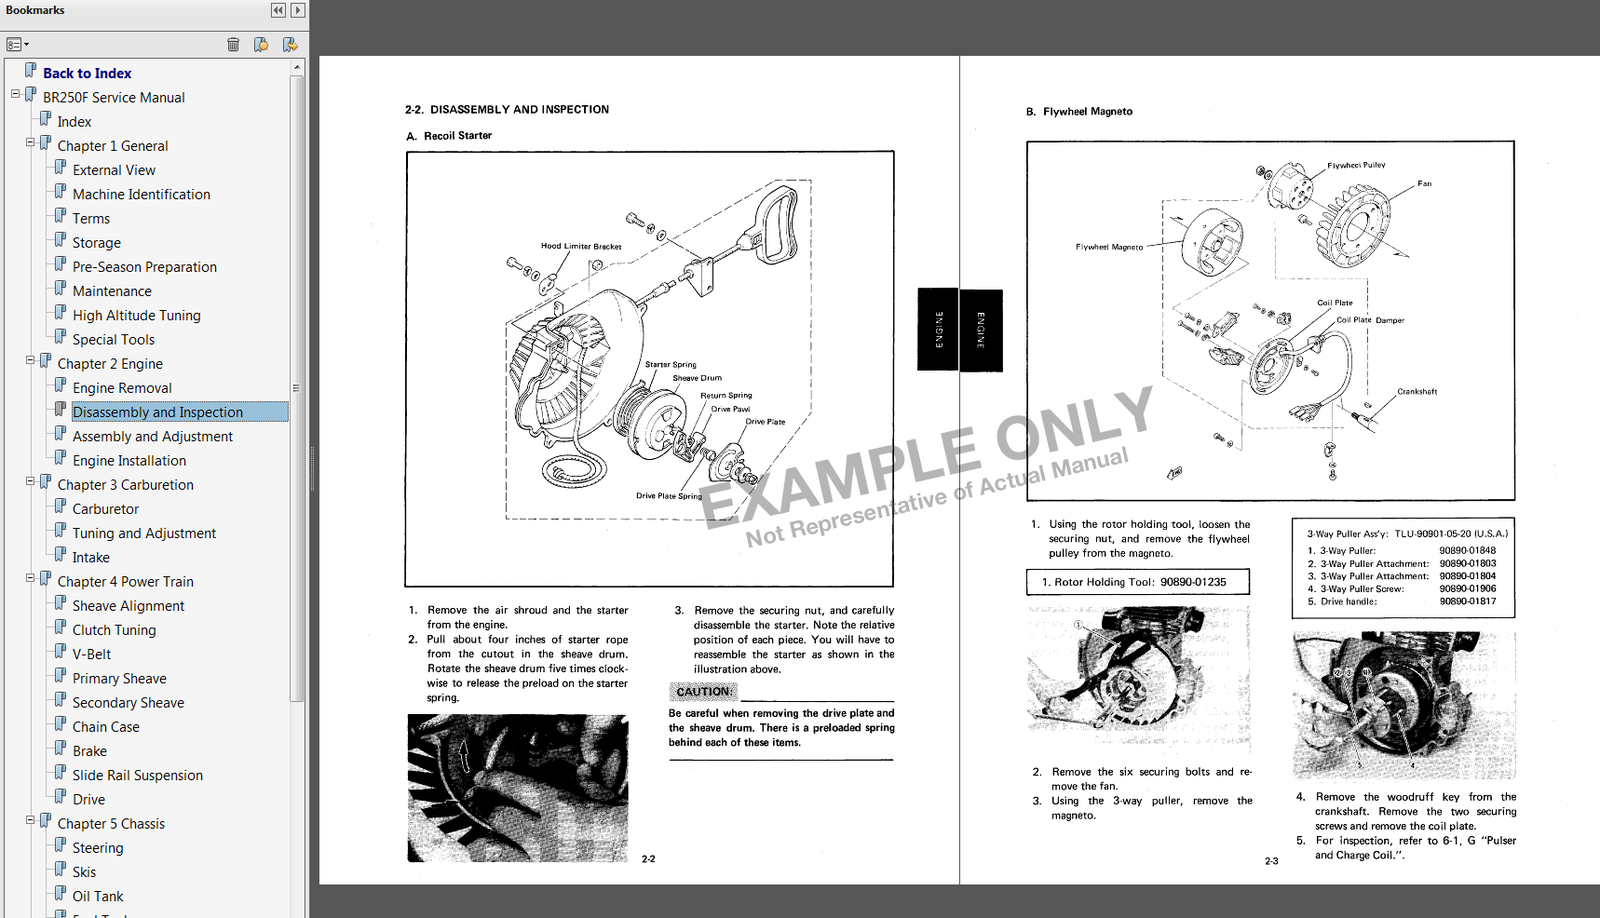 samplewm 1992 1995 yamaha enticer ii lt snowmobile and 50 similar items Yamaha Wiring Schematic at gsmx.co